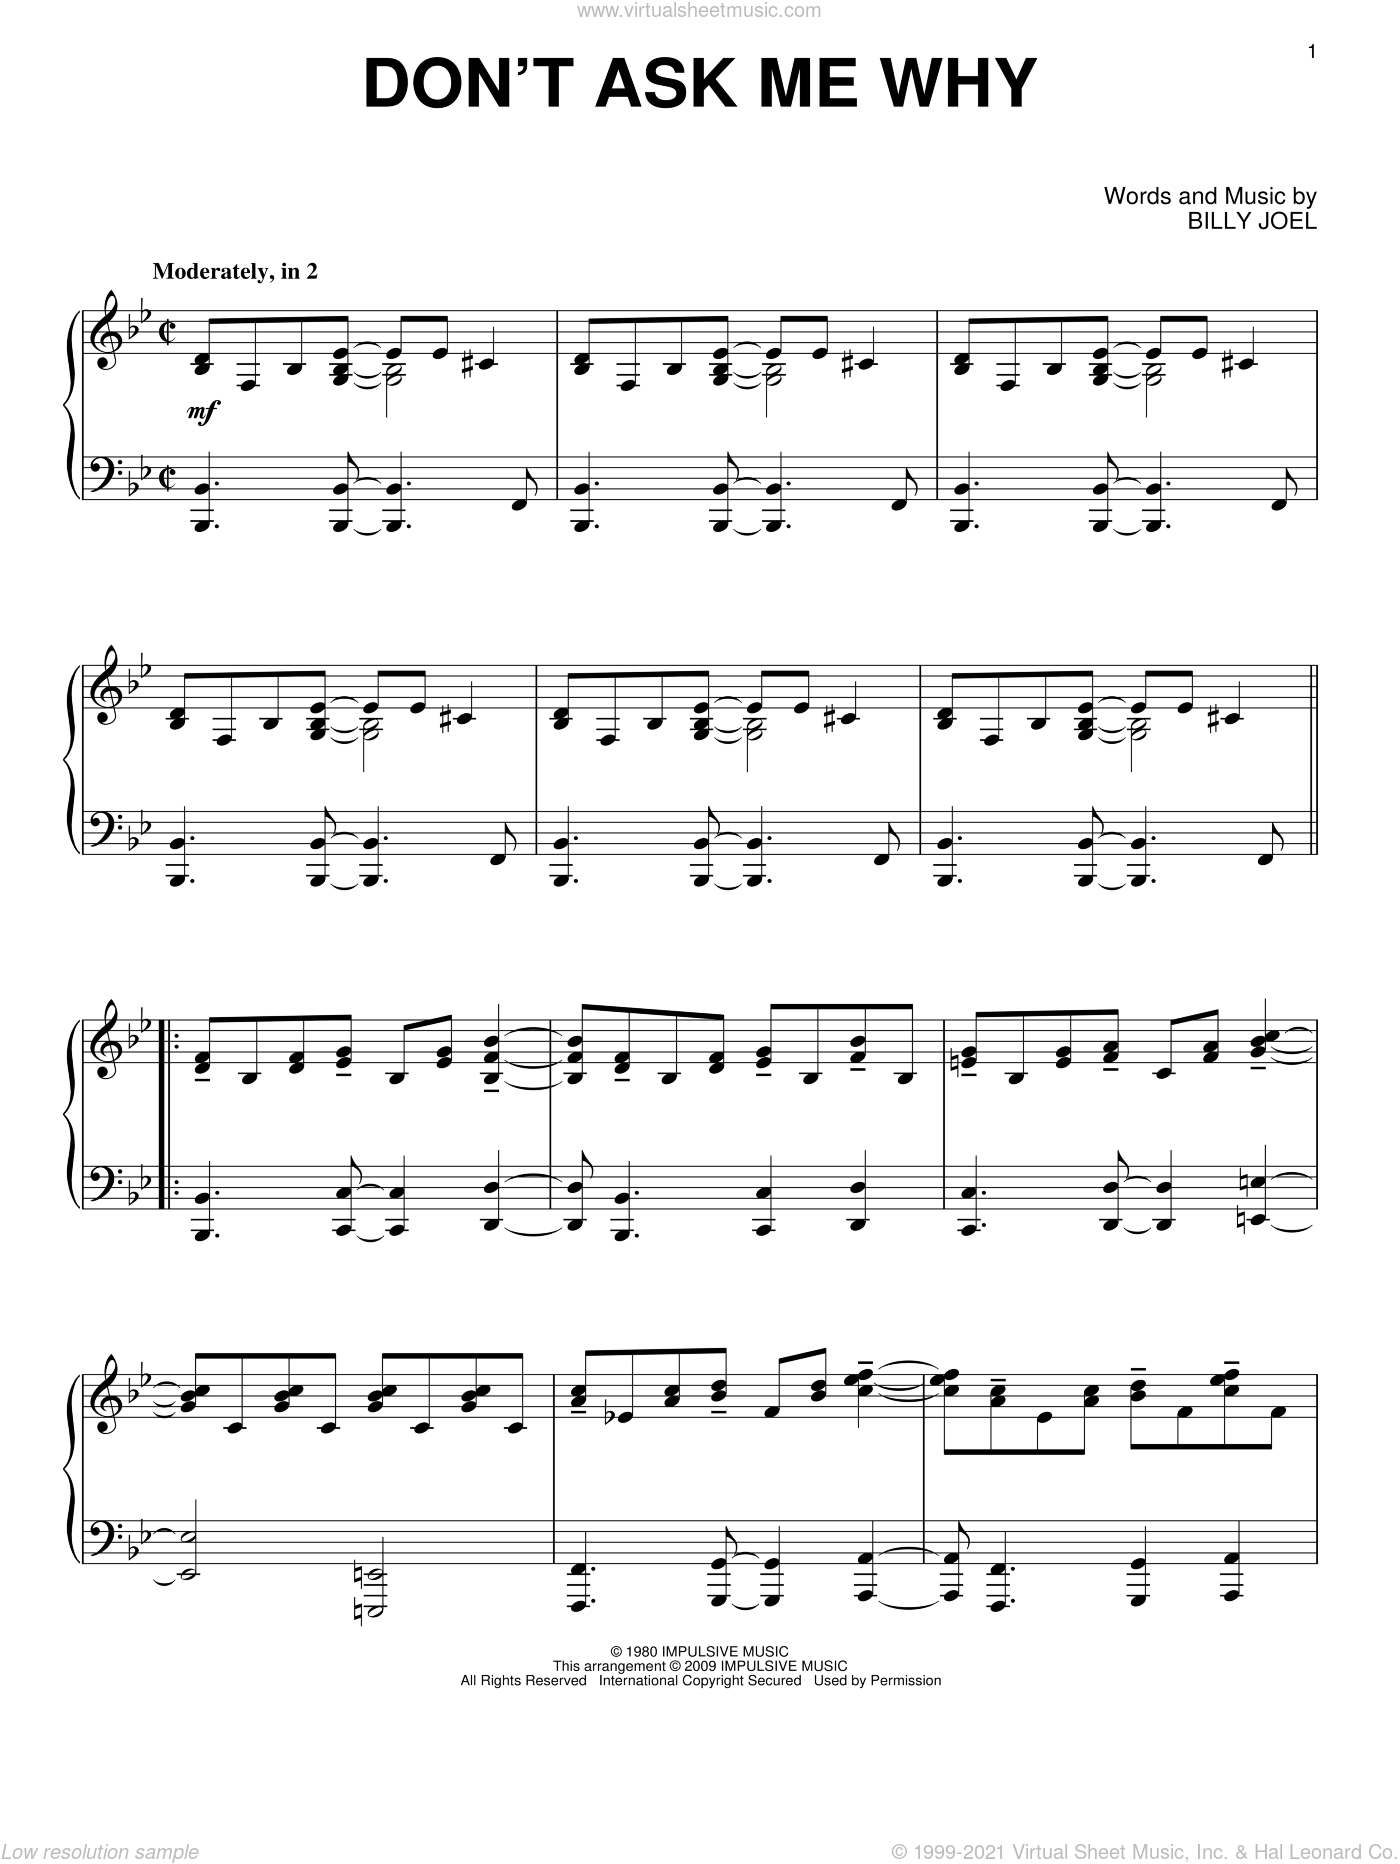 Don't Ask Me Why sheet music for piano solo by Billy Joel. Score Image Preview.